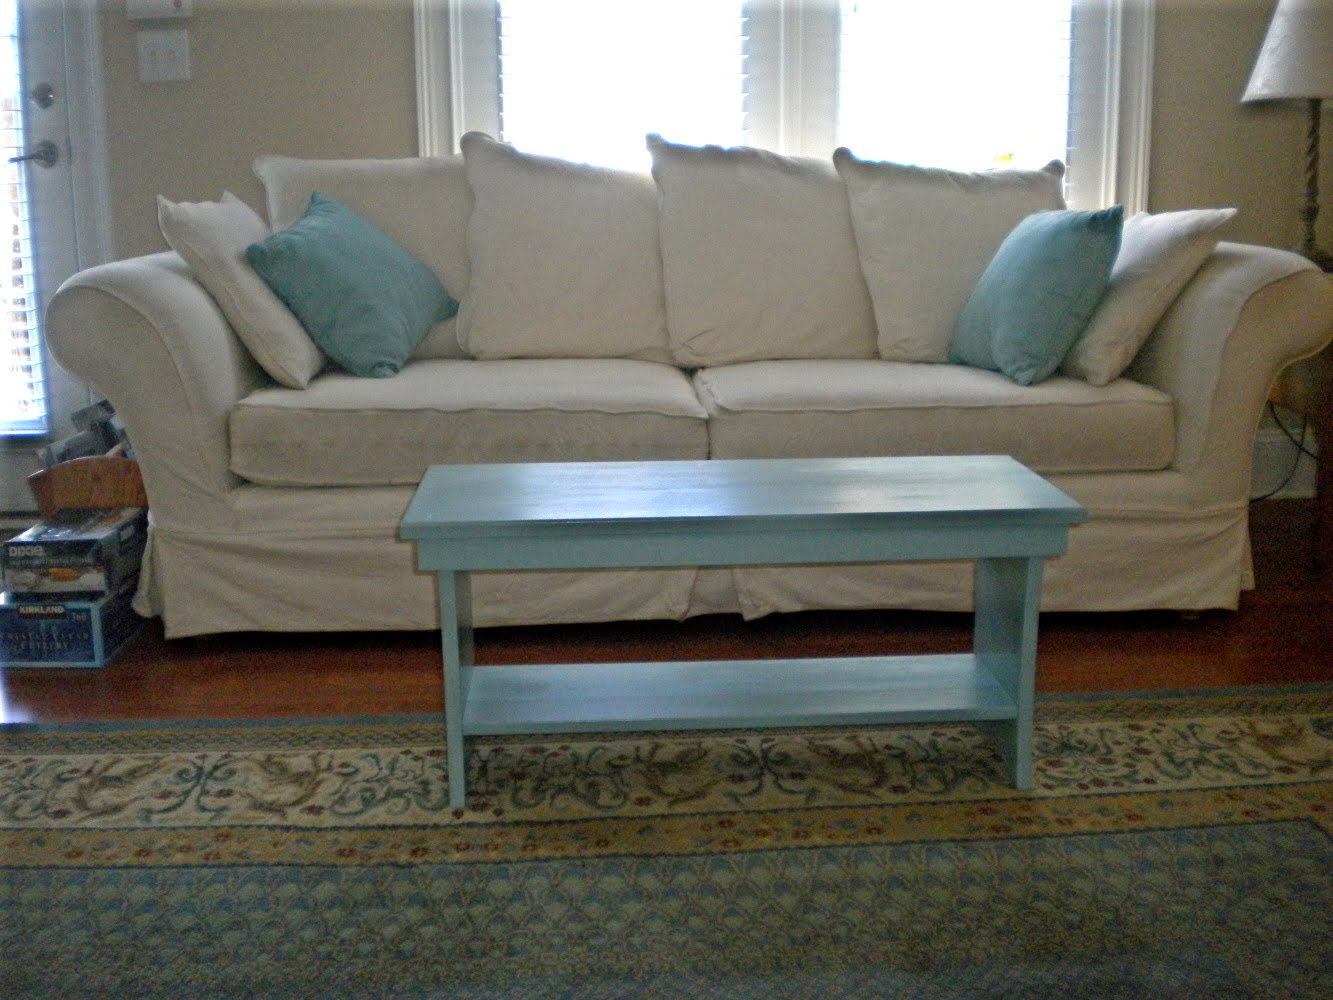 Sherri's Jubilee: Here is the coffee table my Dad and I made!